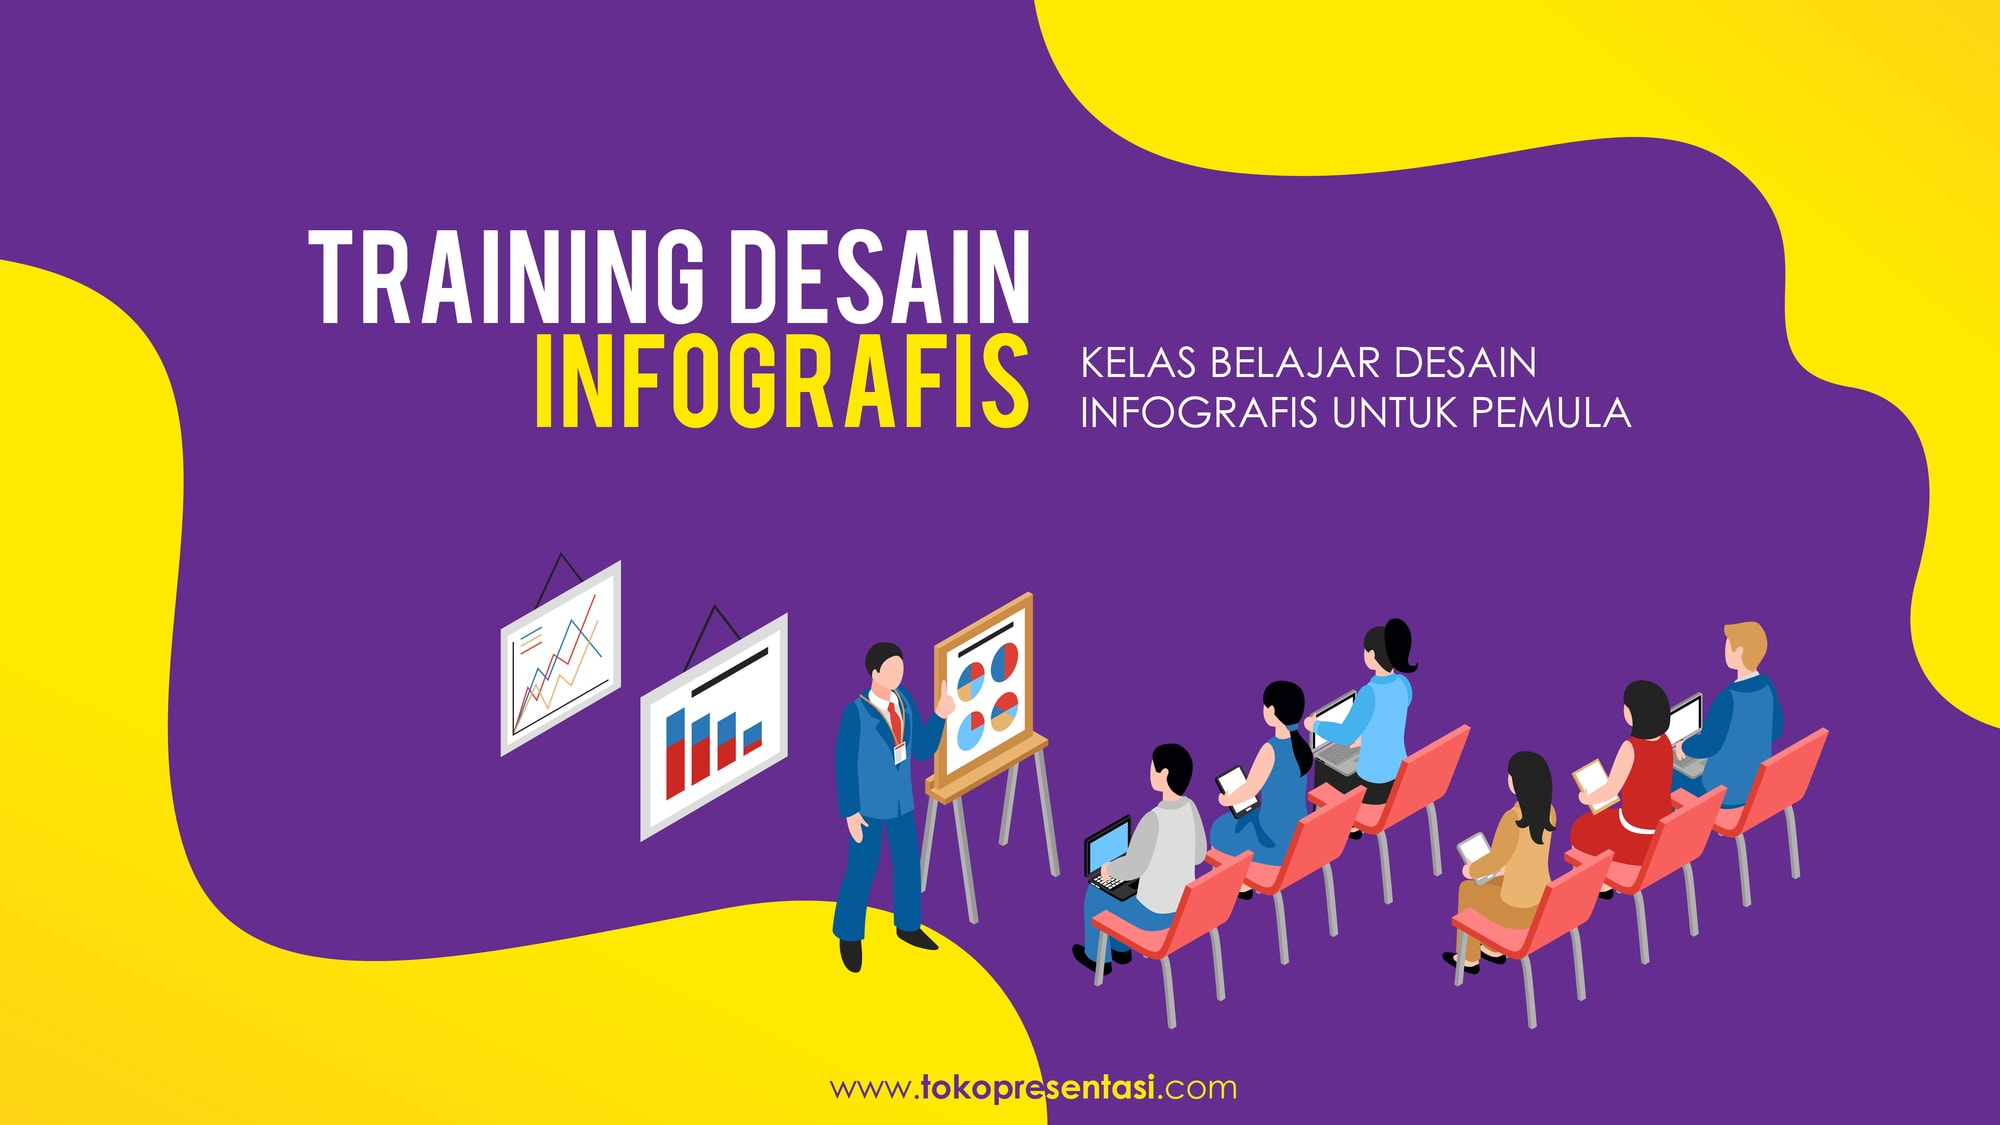 Pelatihan Training Desain Infografis PPT Corporate University Bulog Tokopresentasi